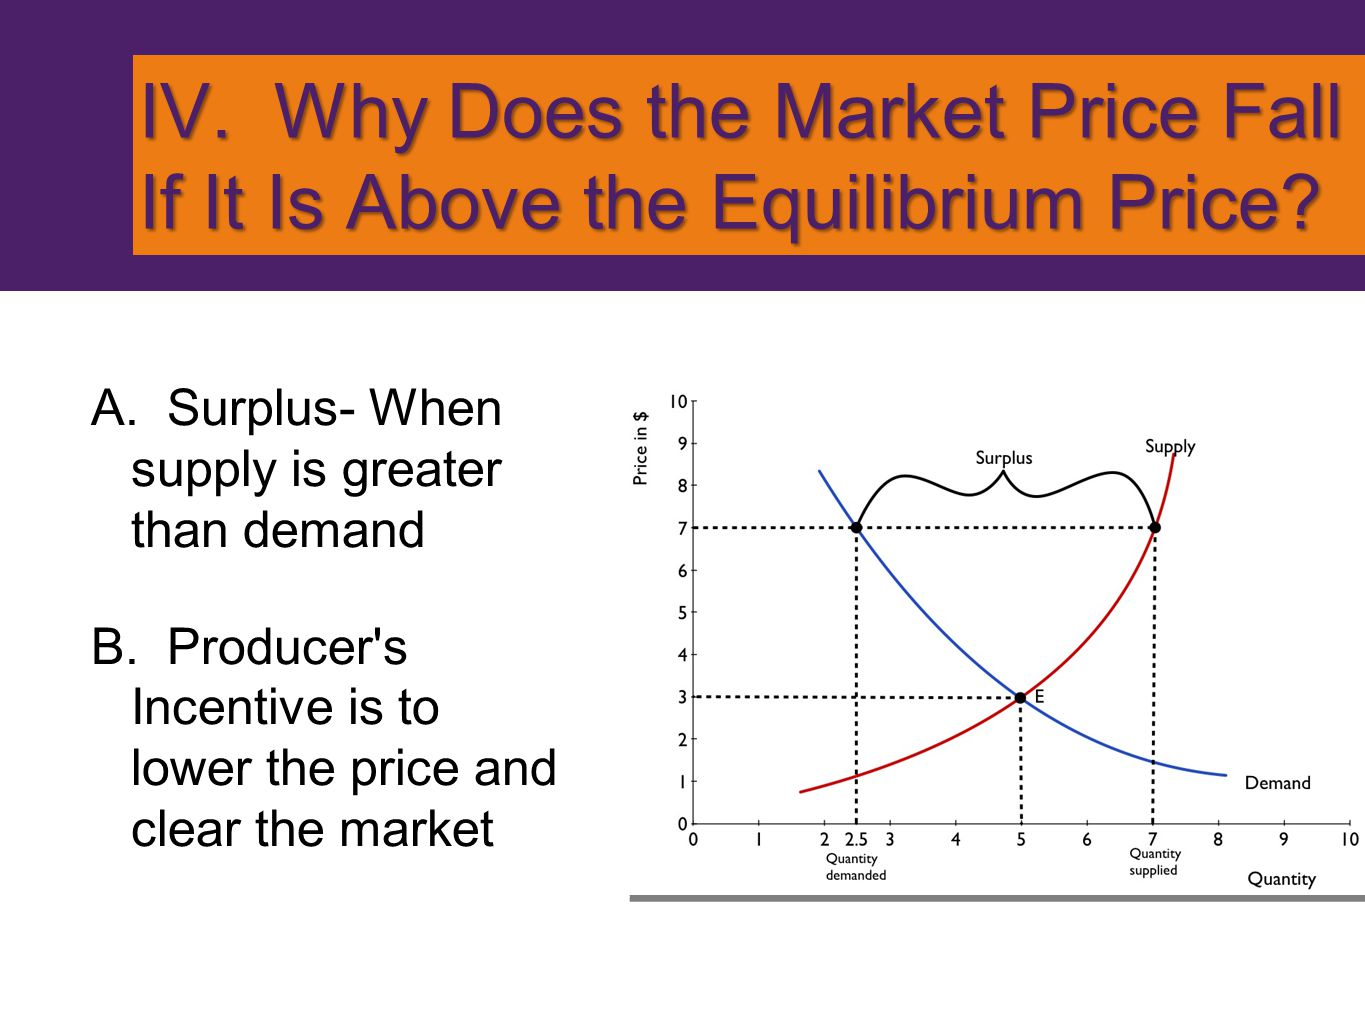 IV. Why Does the Market Price Fall If It Is Above the Equilibrium Price